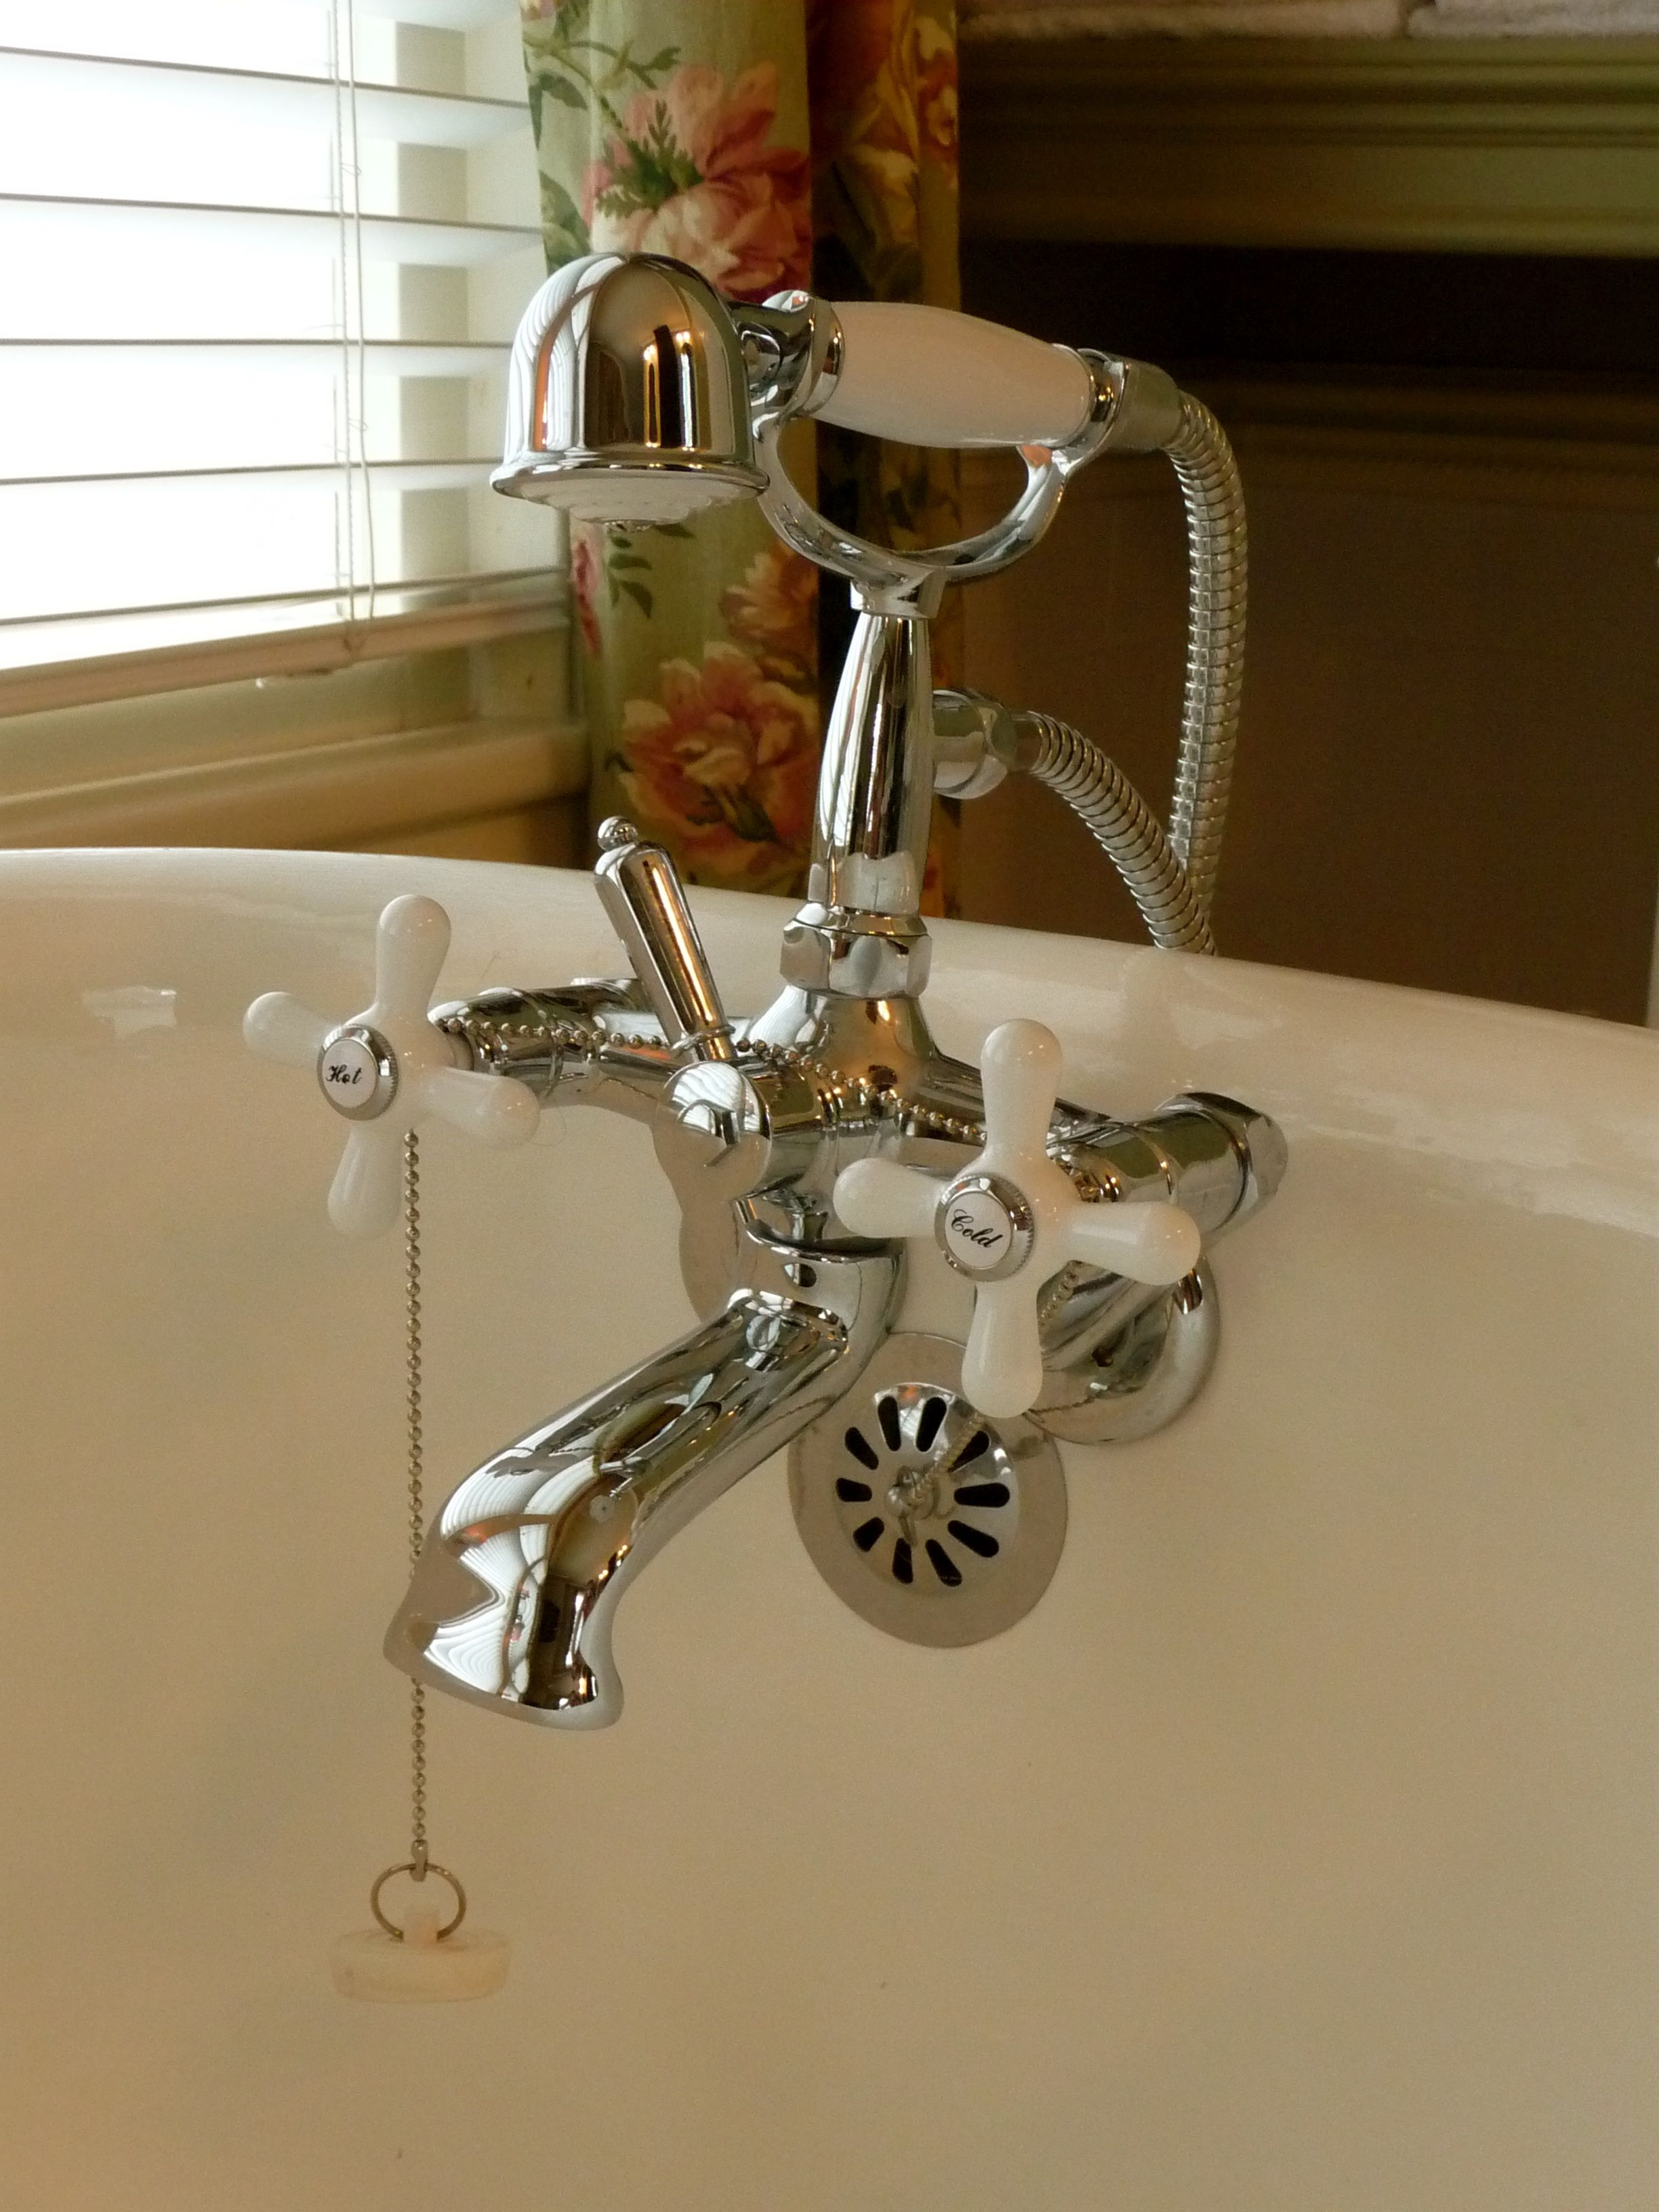 Reproduction Vintage Faucet Love This It S Going In My Bathroom